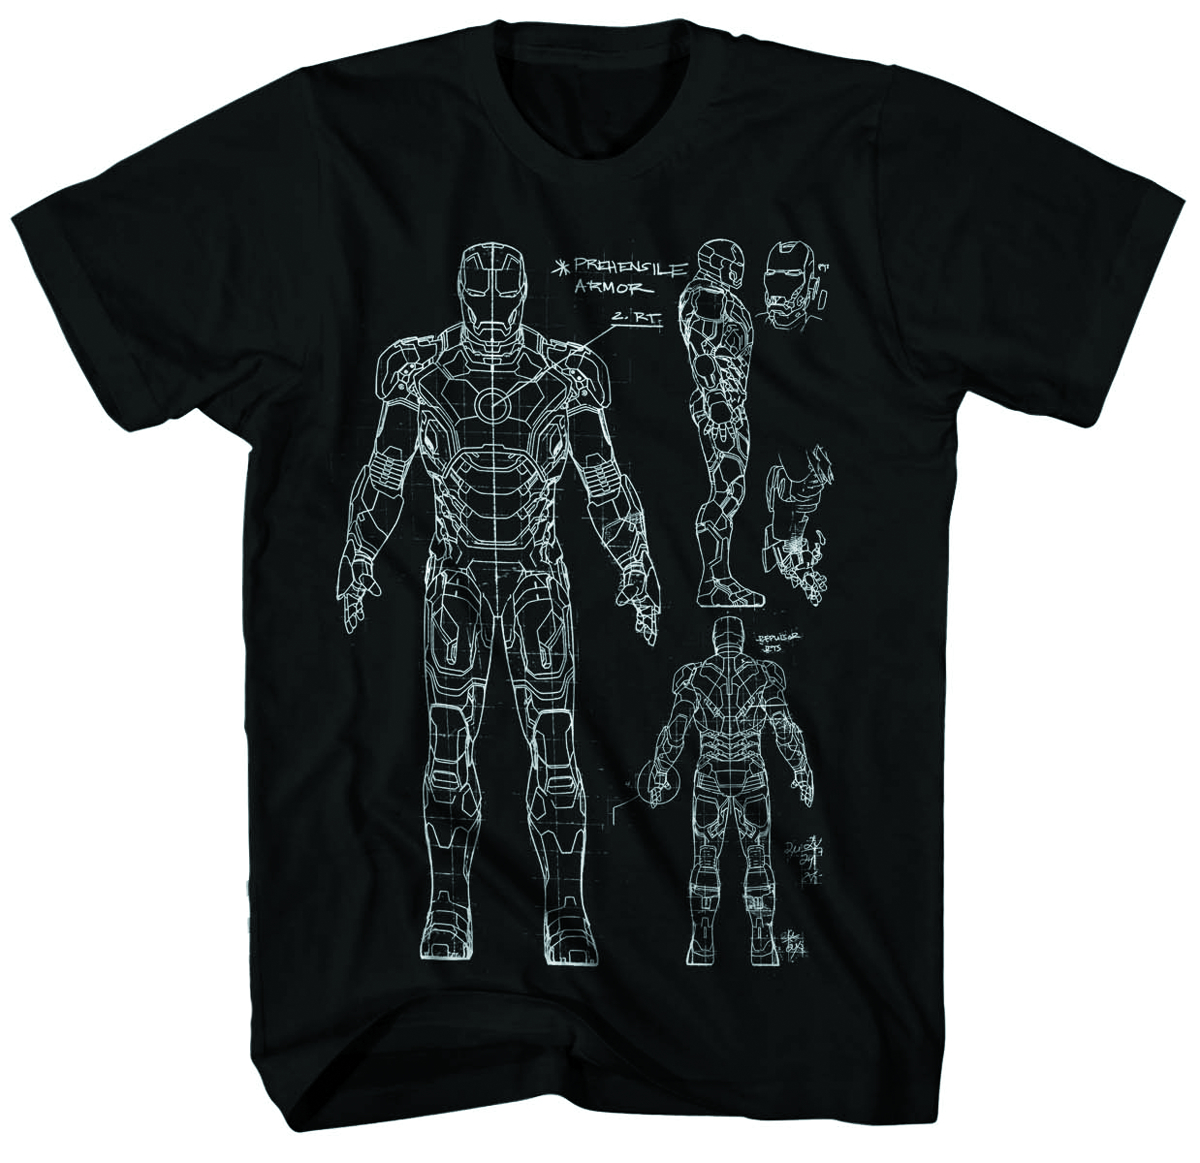 IRON MAN 3 BLUEPRINT-M PX BLK T/S LG